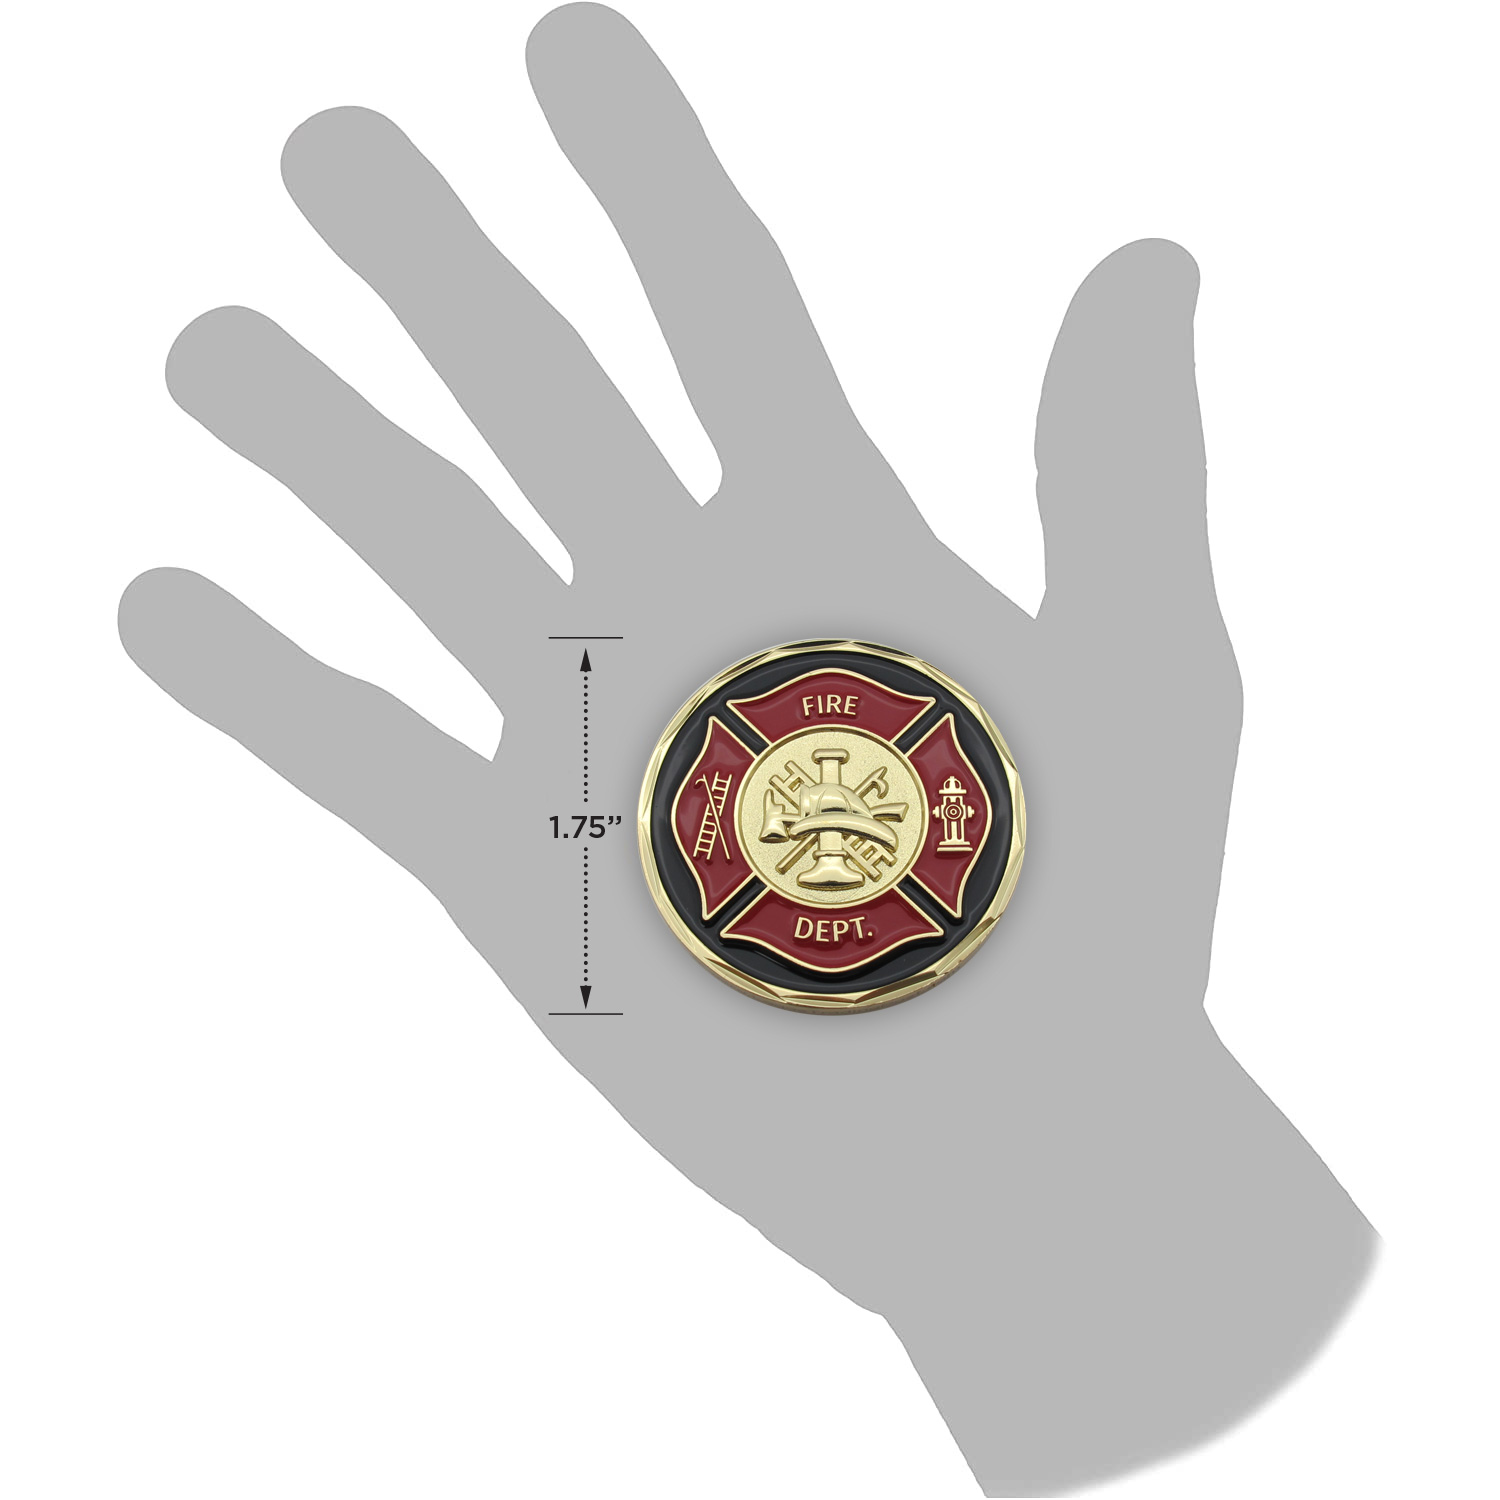 Firefighter Appreciation Gold Plated Challenge Coin in a hand for size reference